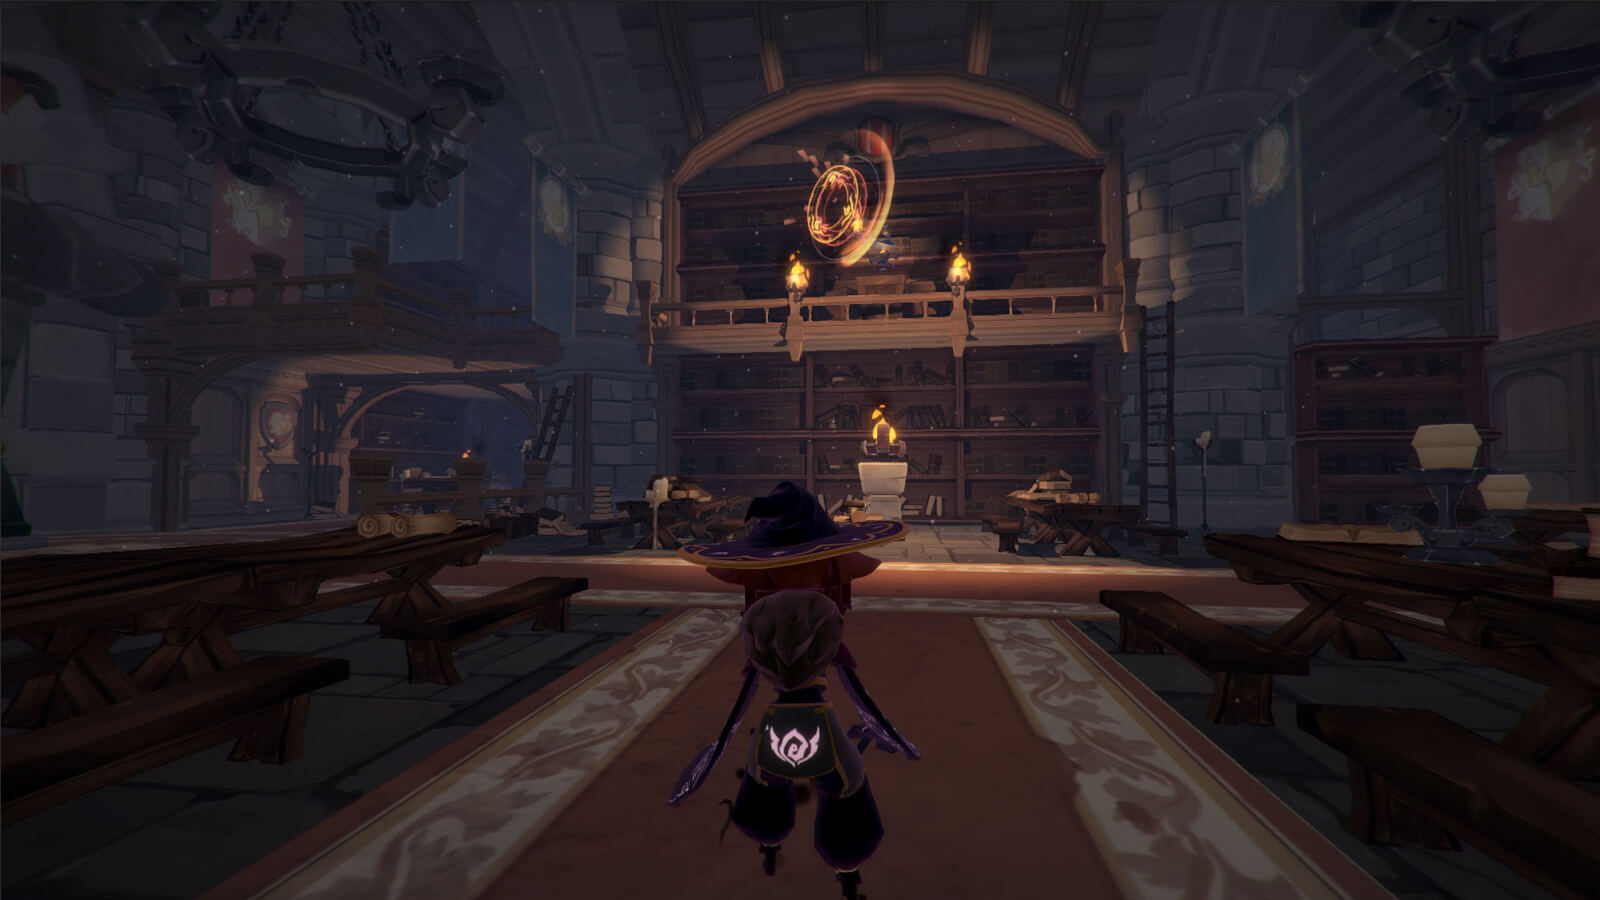 View of the player's character from behind standing in a torch-lit library with several tables and benches nearby